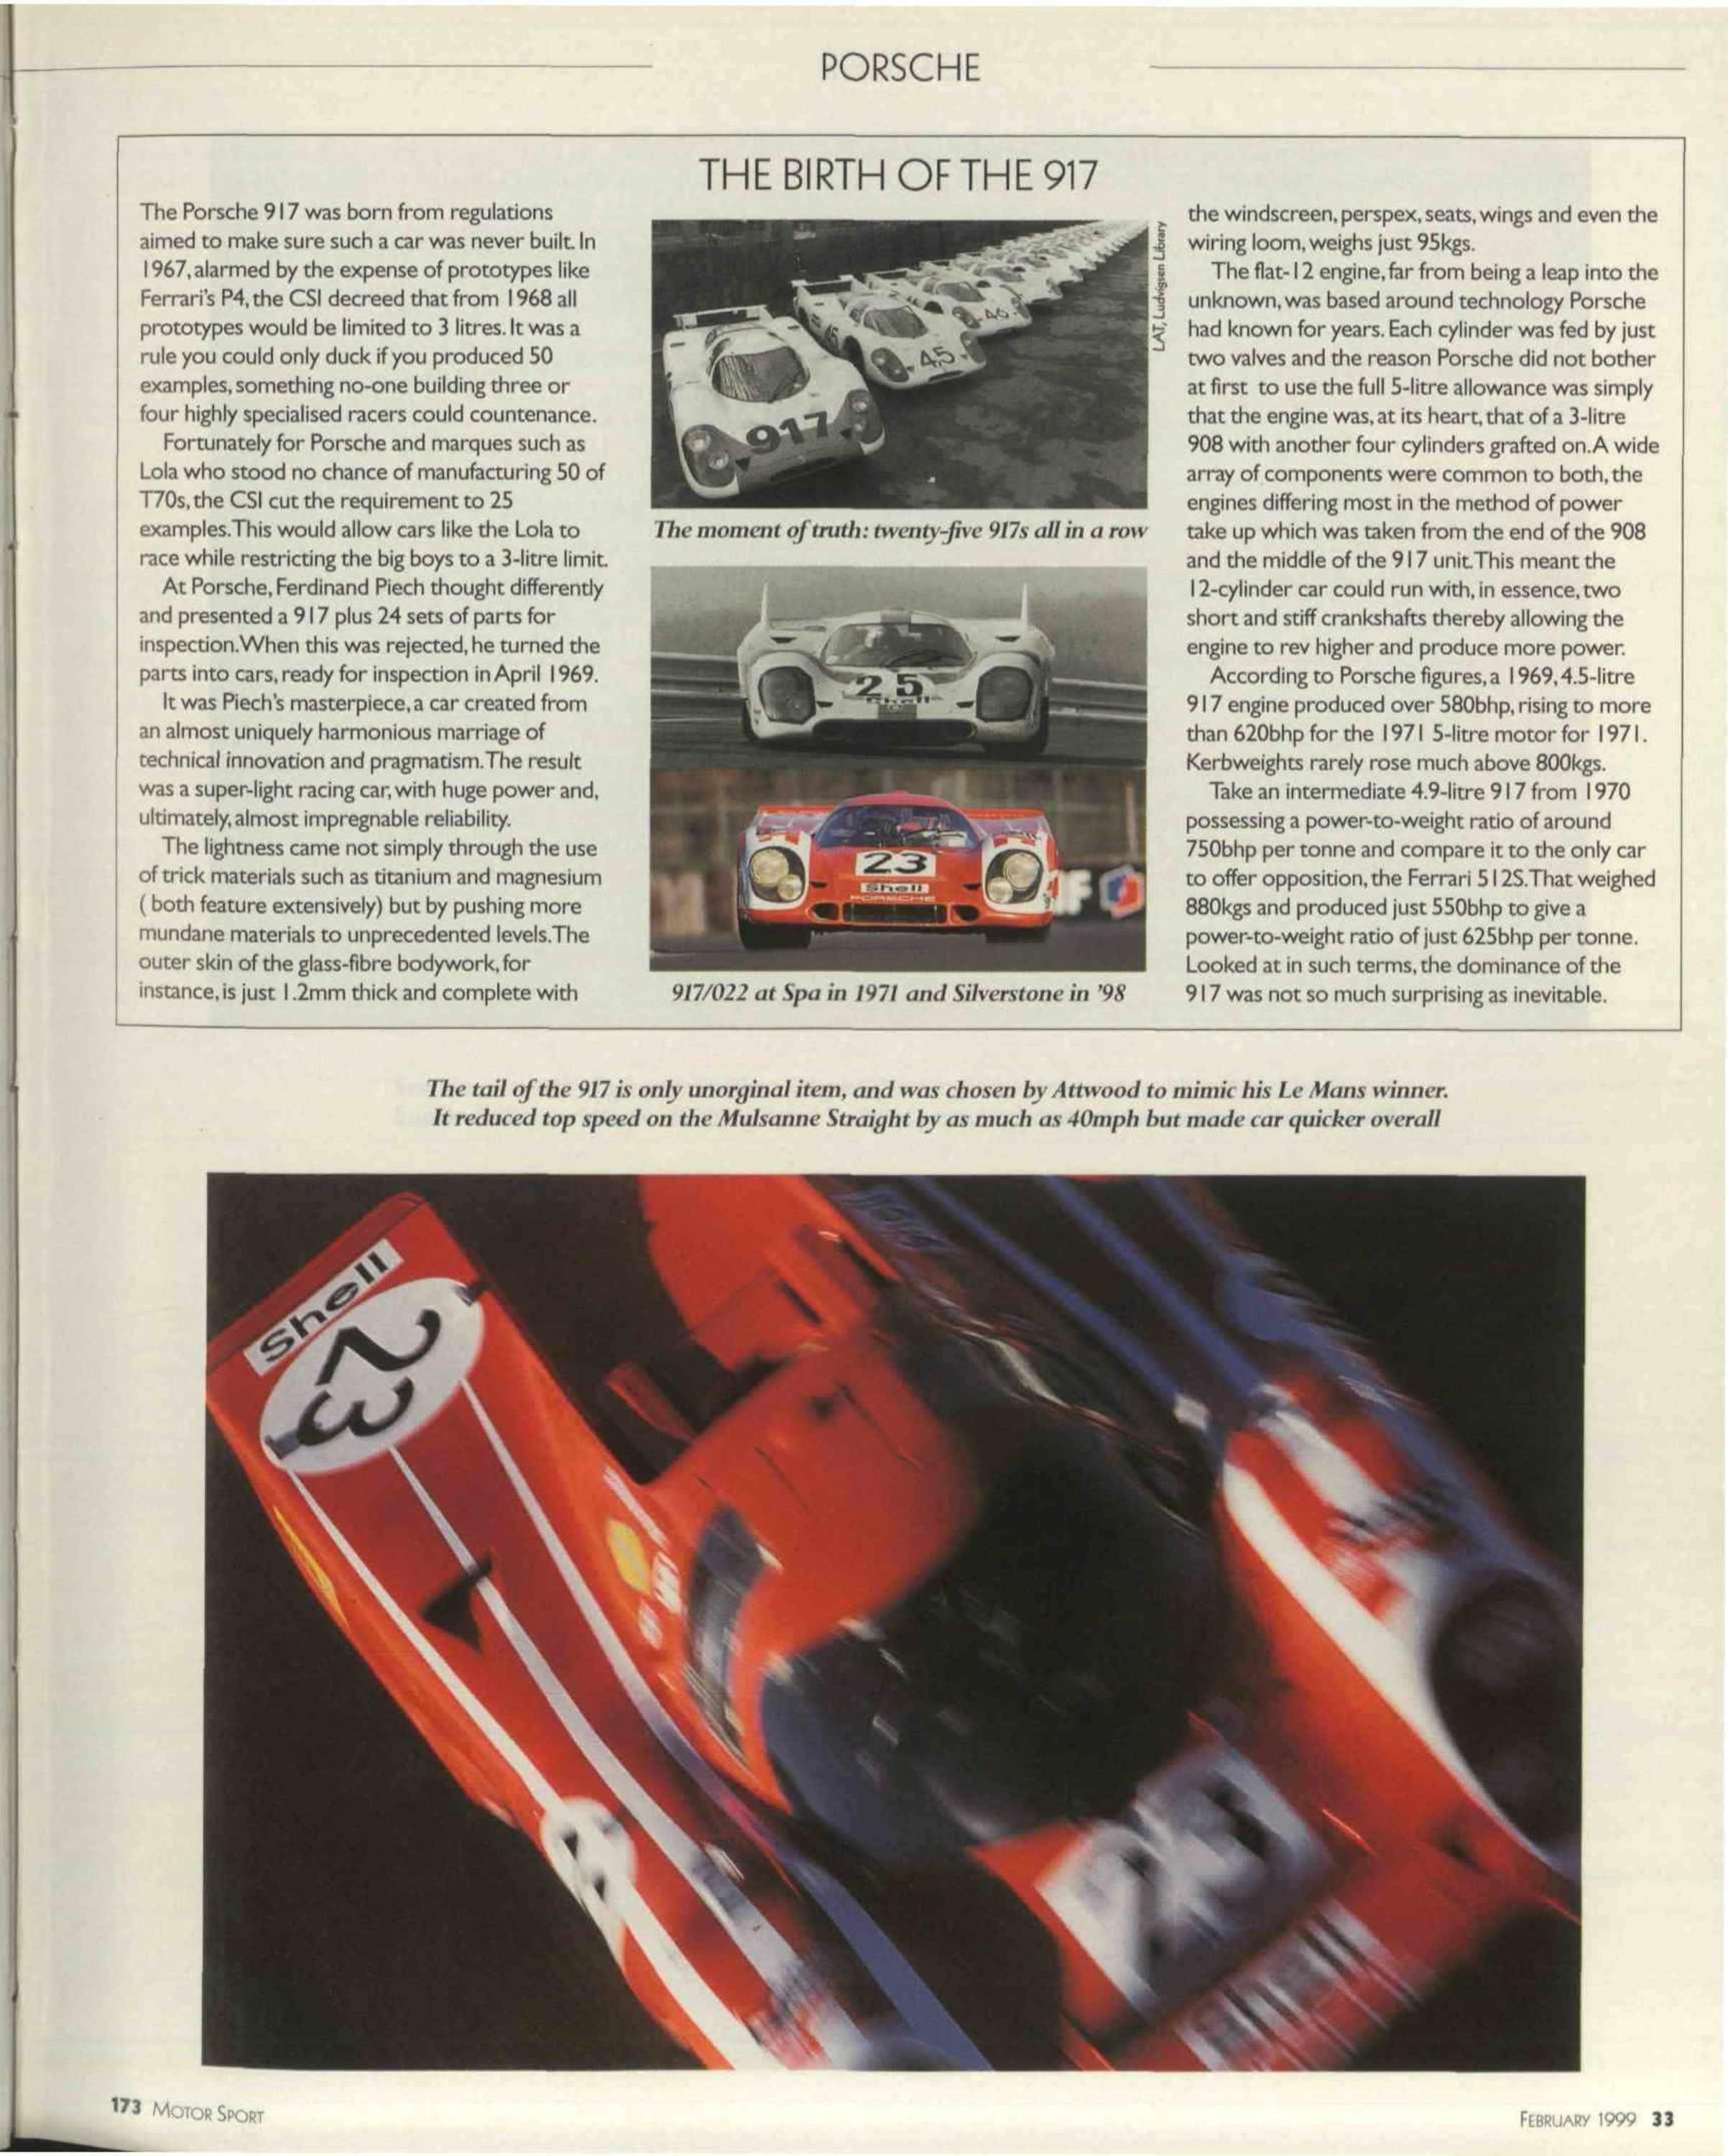 the birth of the 917 image